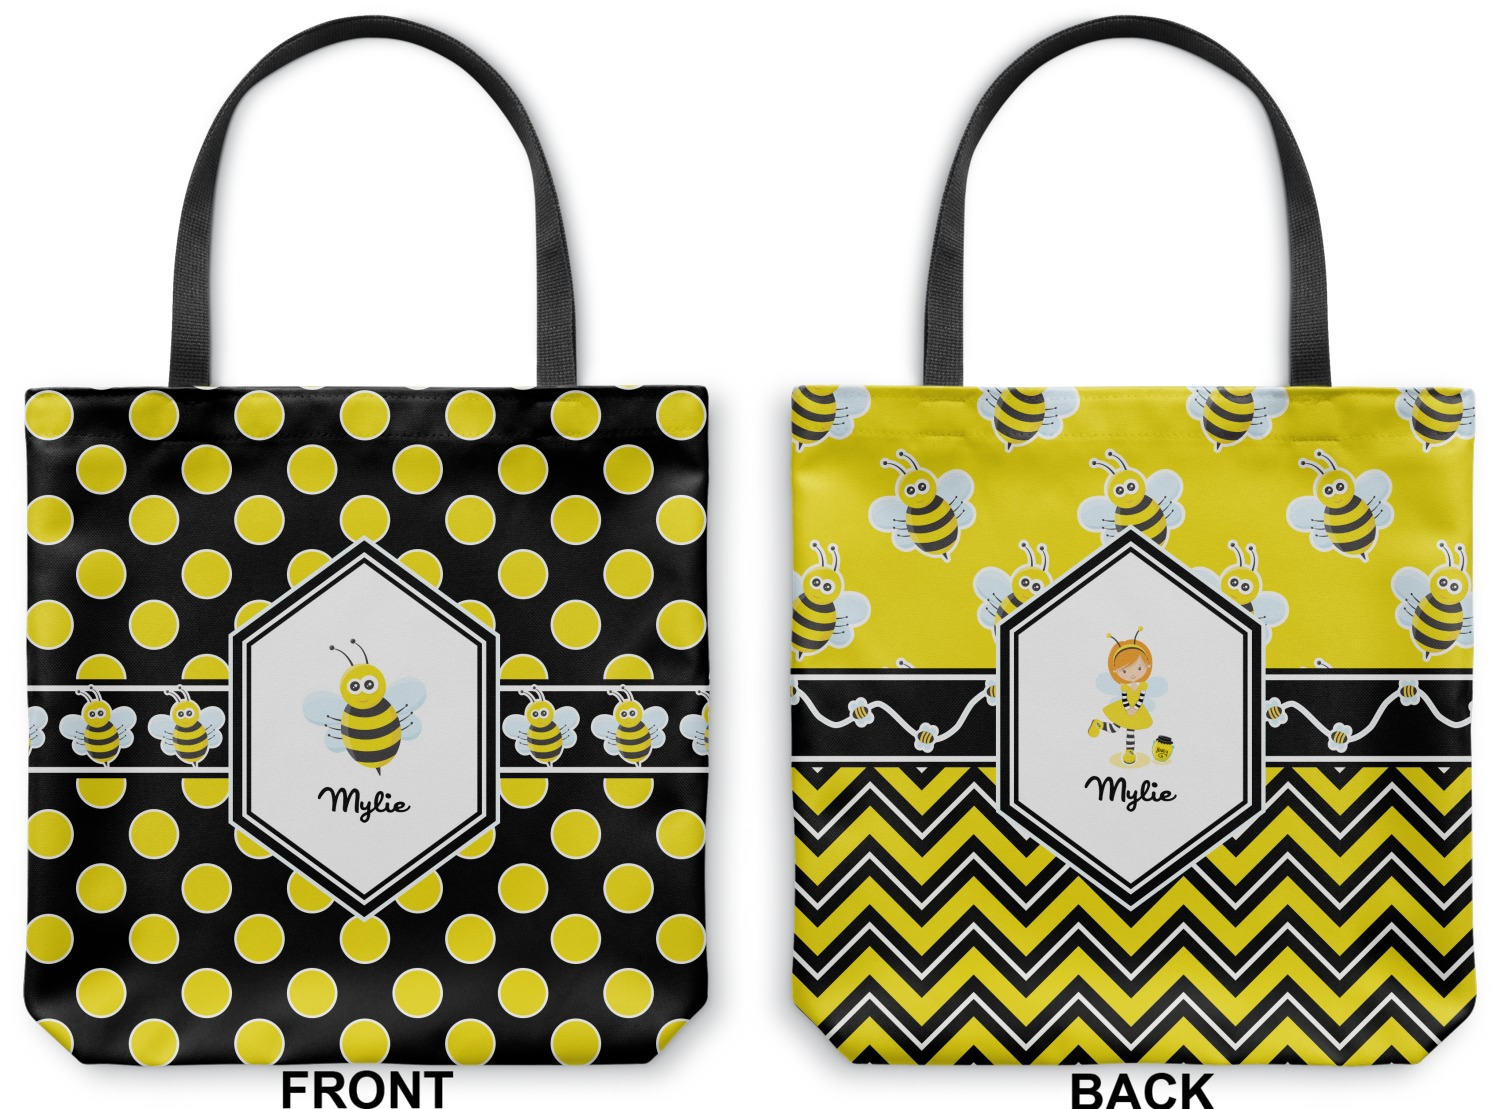 0a56dec18 Bee & Polka Dots Canvas Tote Bag (Personalized) - YouCustomizeIt